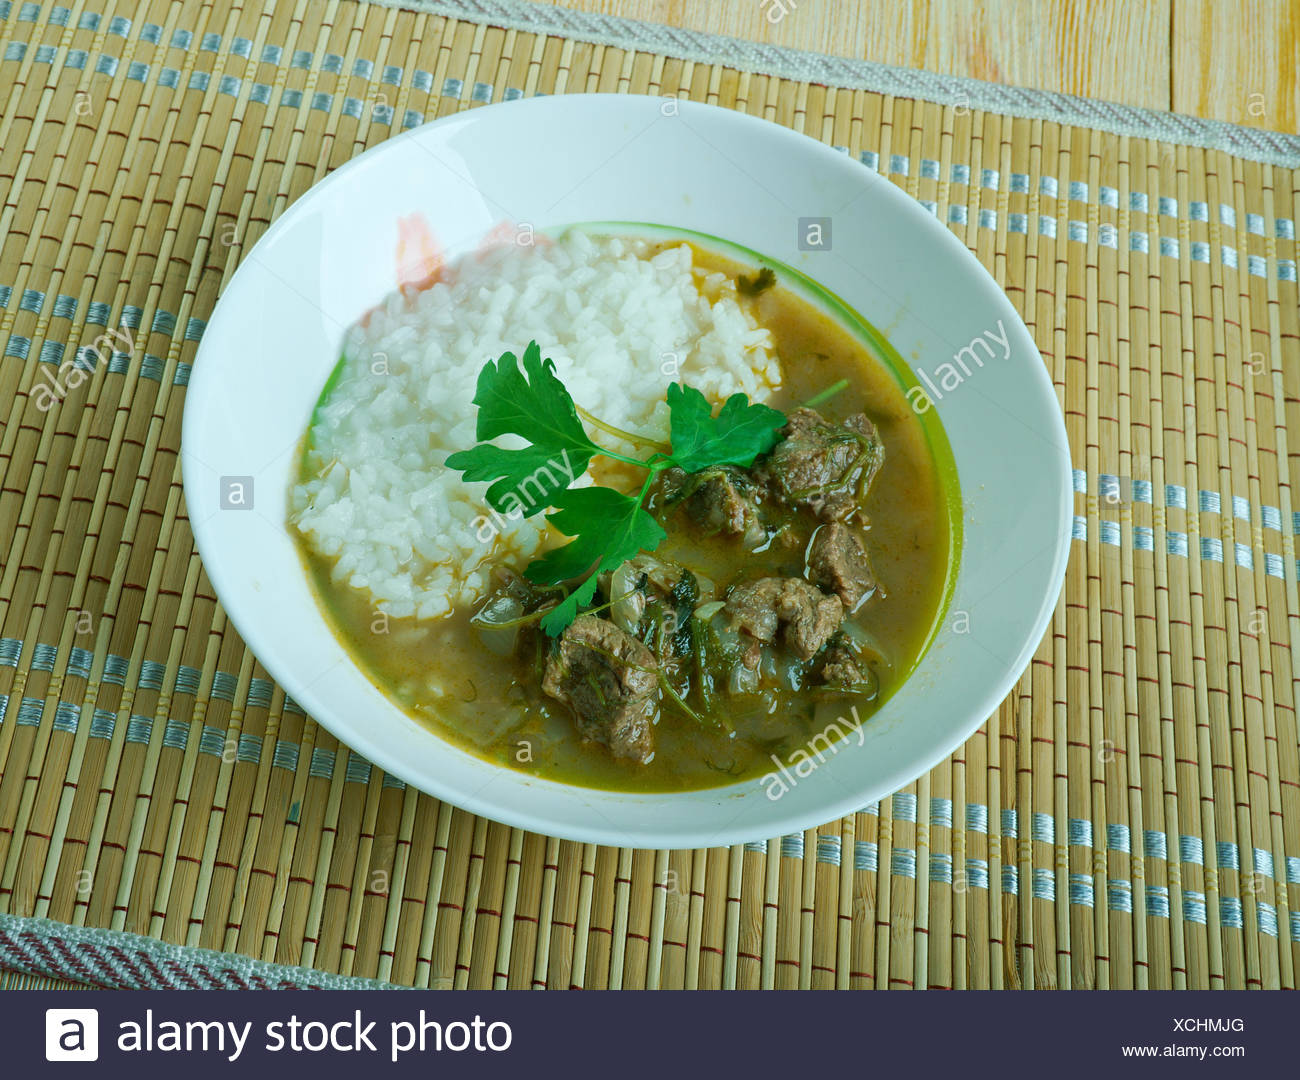 Guatemalan Shredded Beef - Stock Image